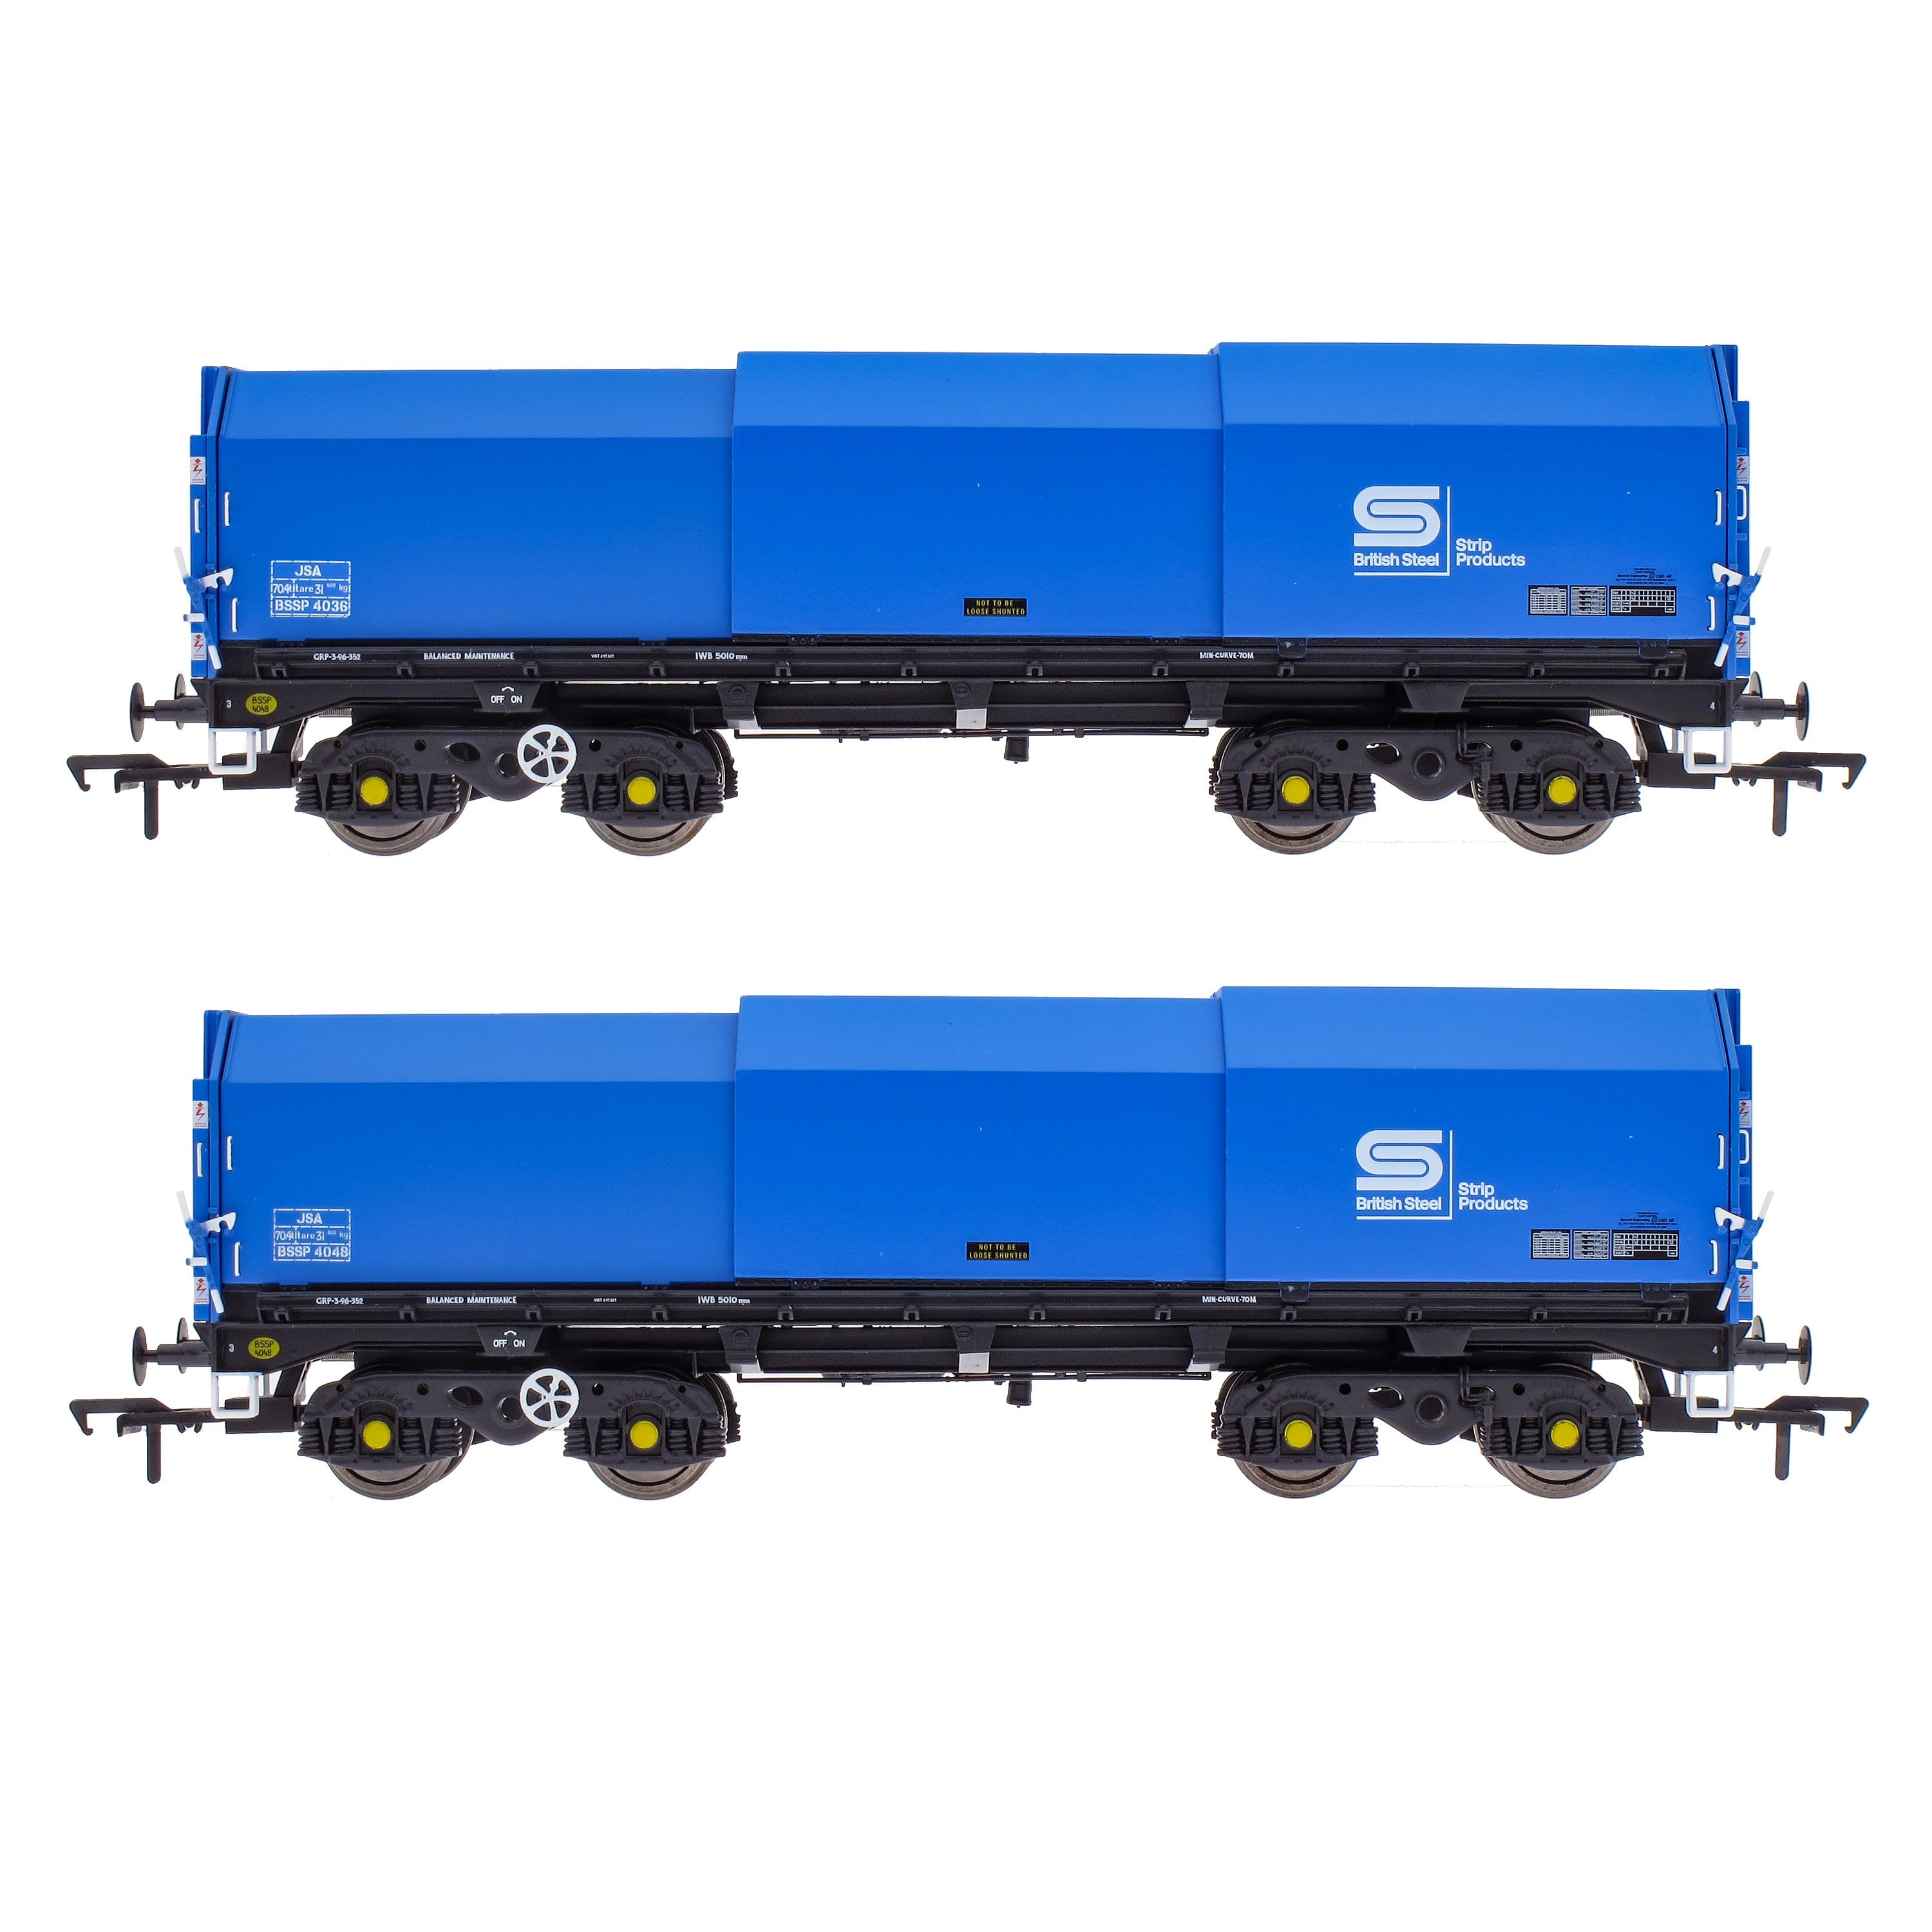 JSA Bogie Covered Steel Wagon Twin Pack - British Steel 2